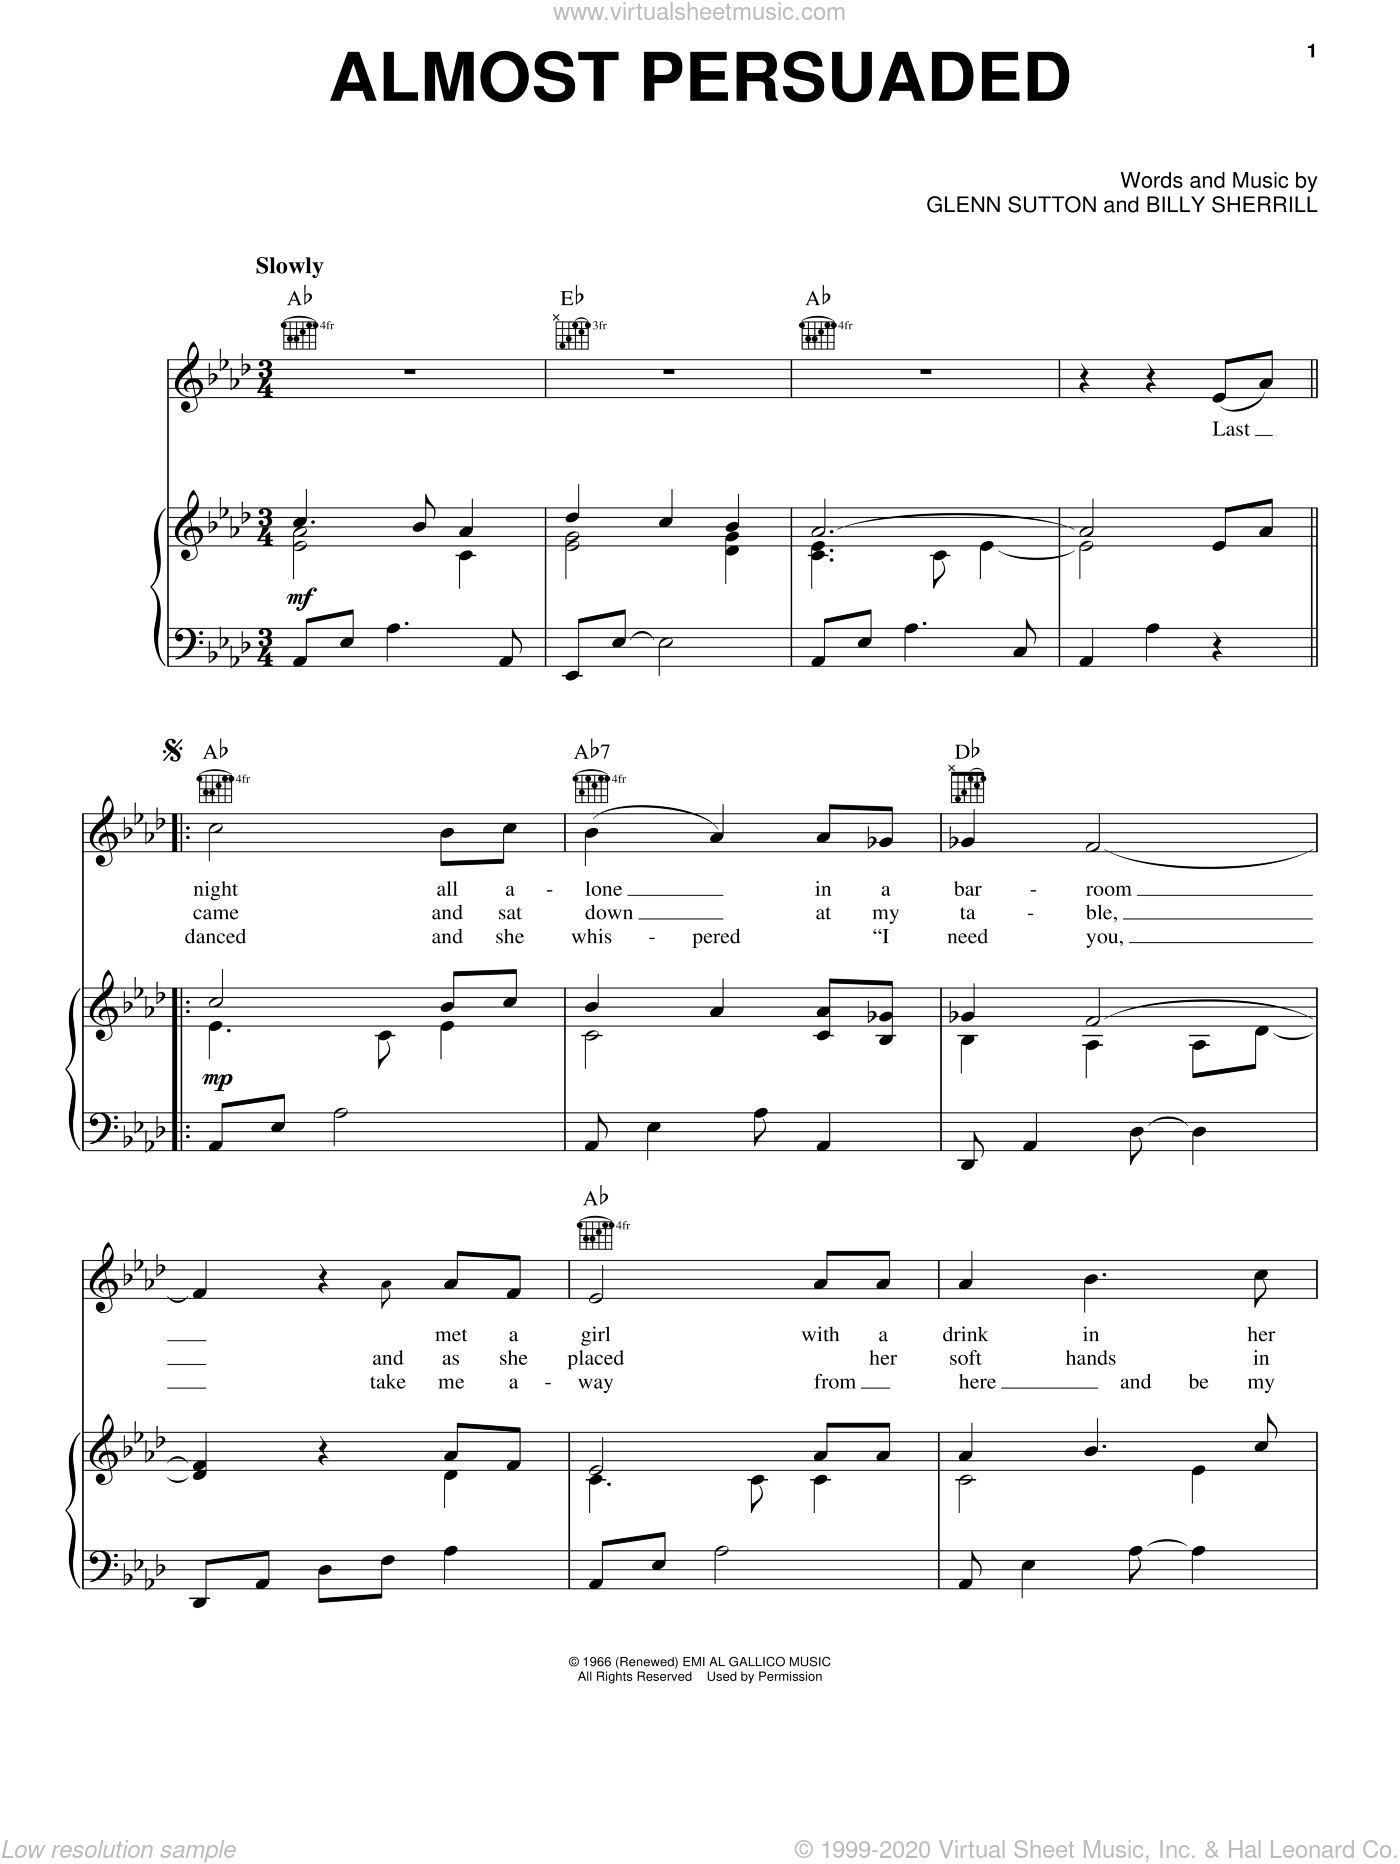 Almost Persuaded sheet music for voice, piano or guitar by David Houston